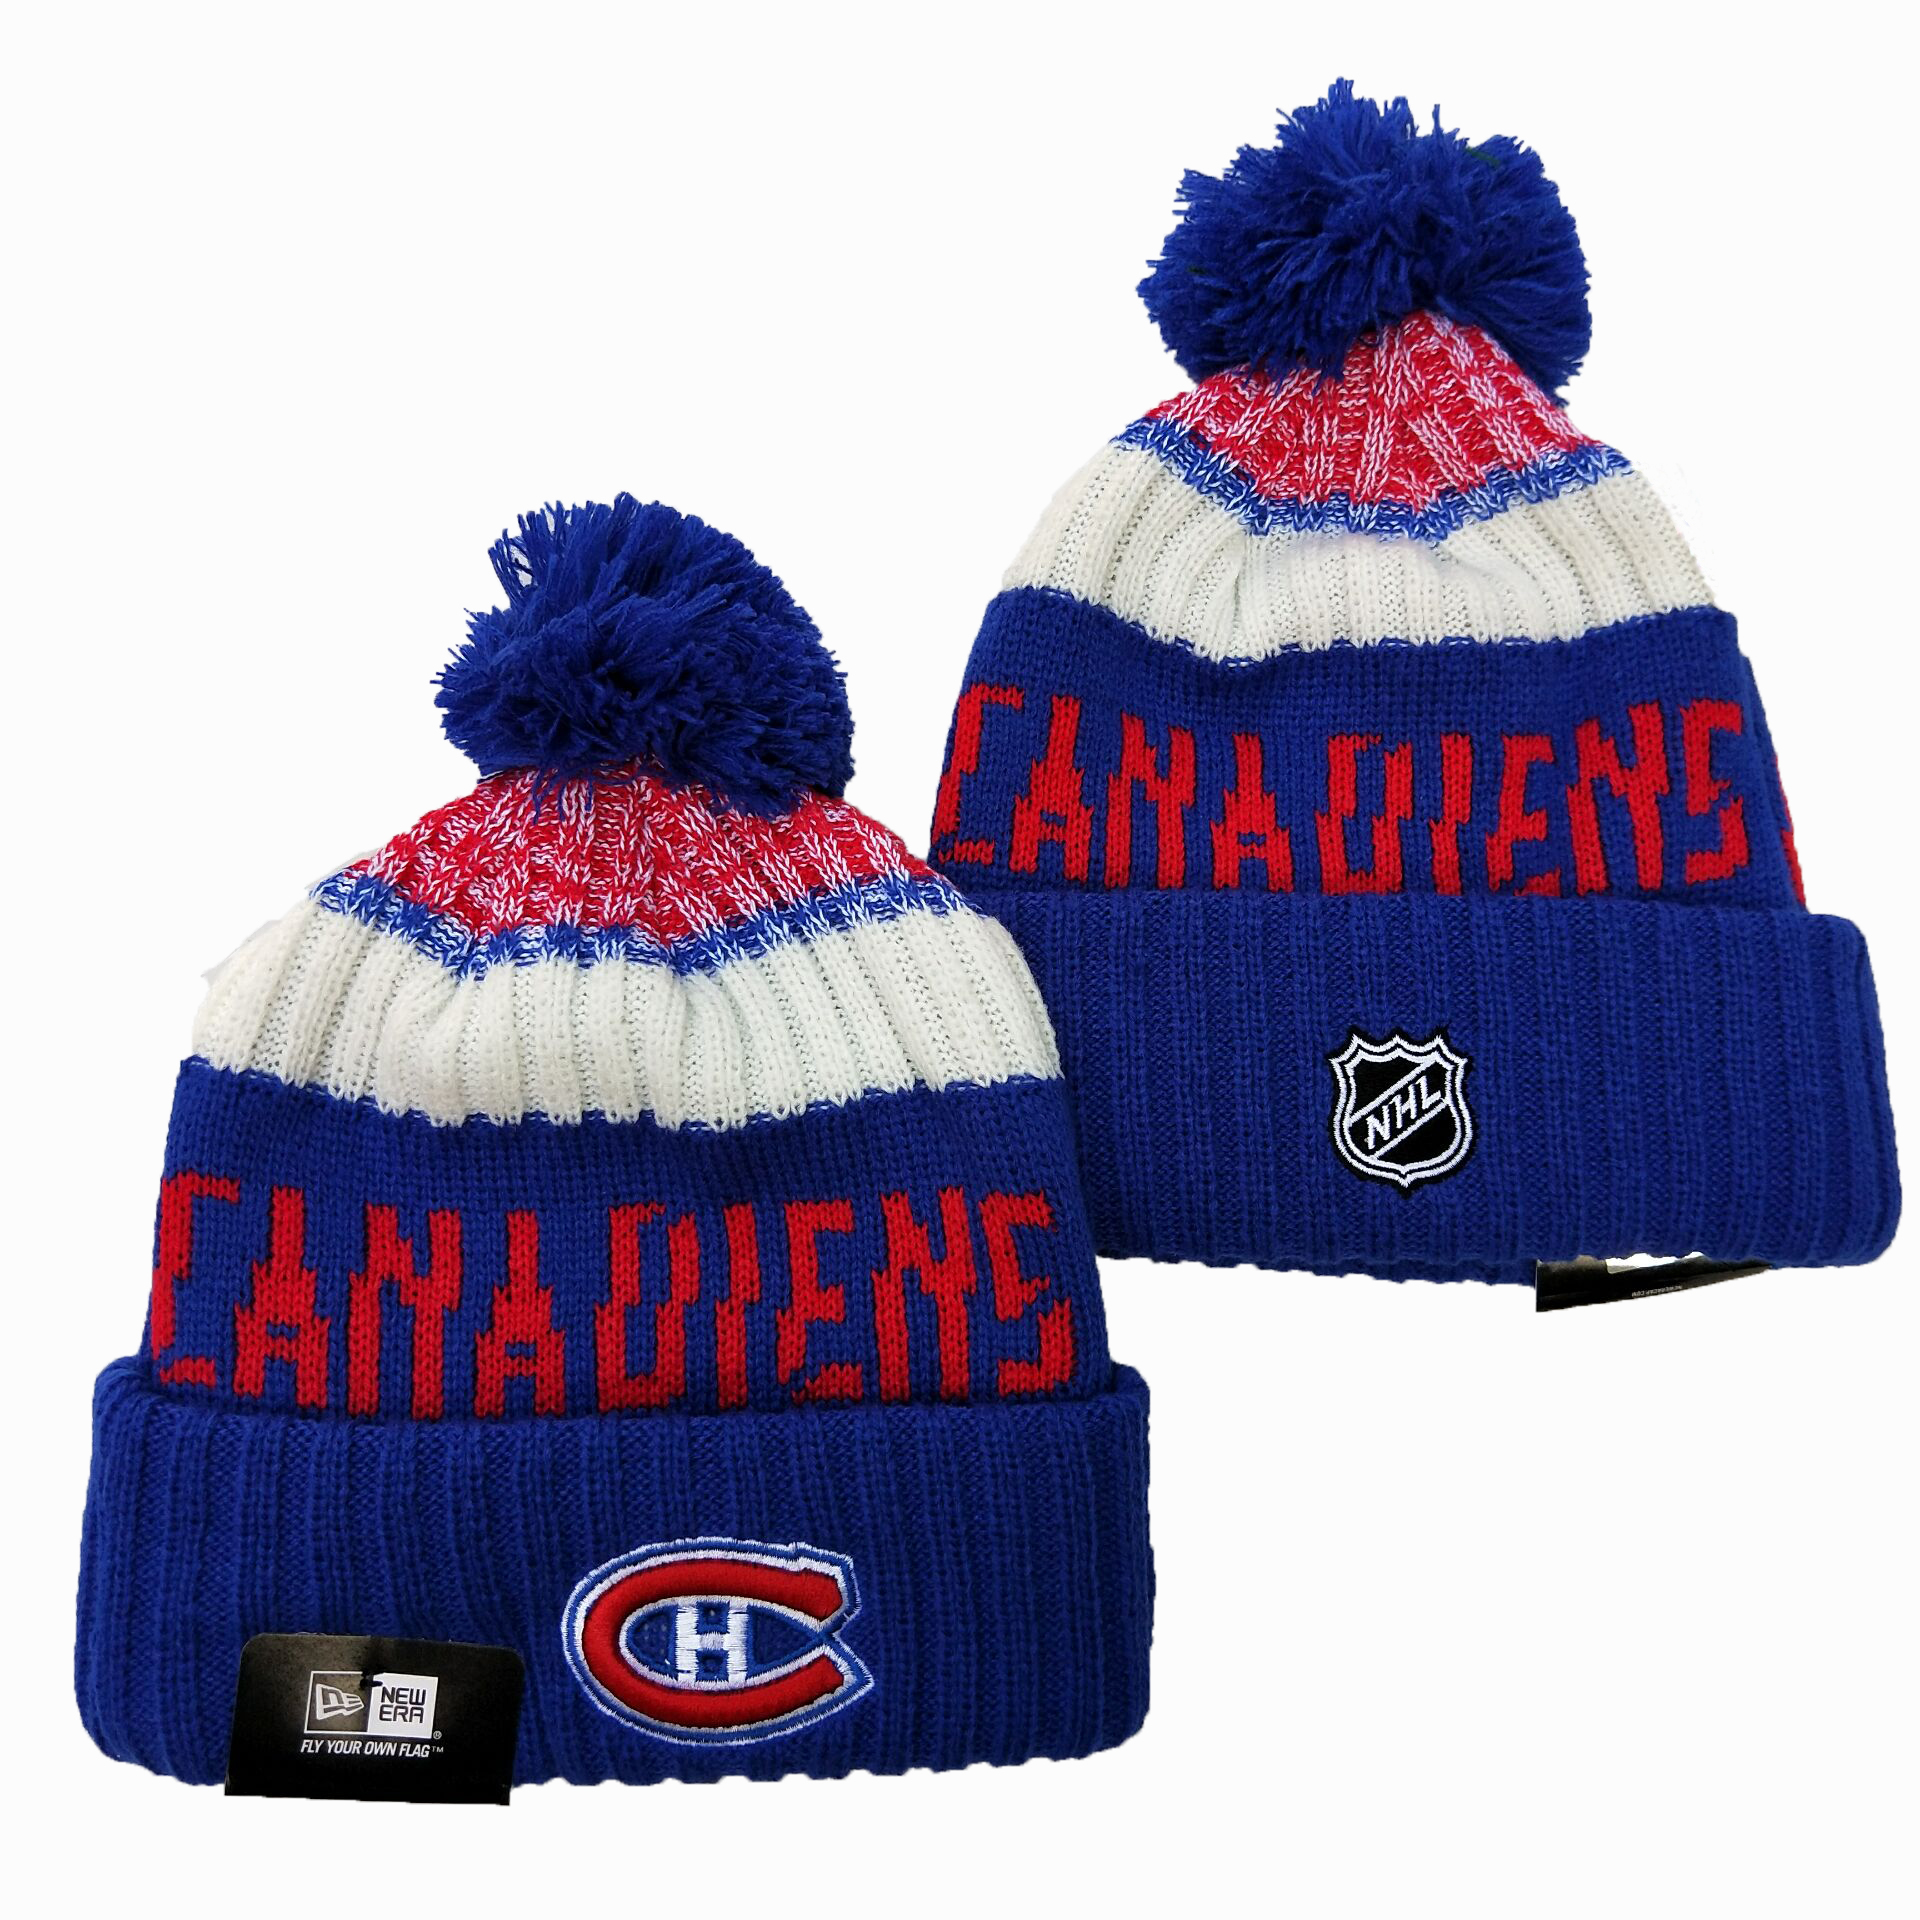 Canadiens Team Logo Royal Wordmark Cuffed Pom Knit Hat YD